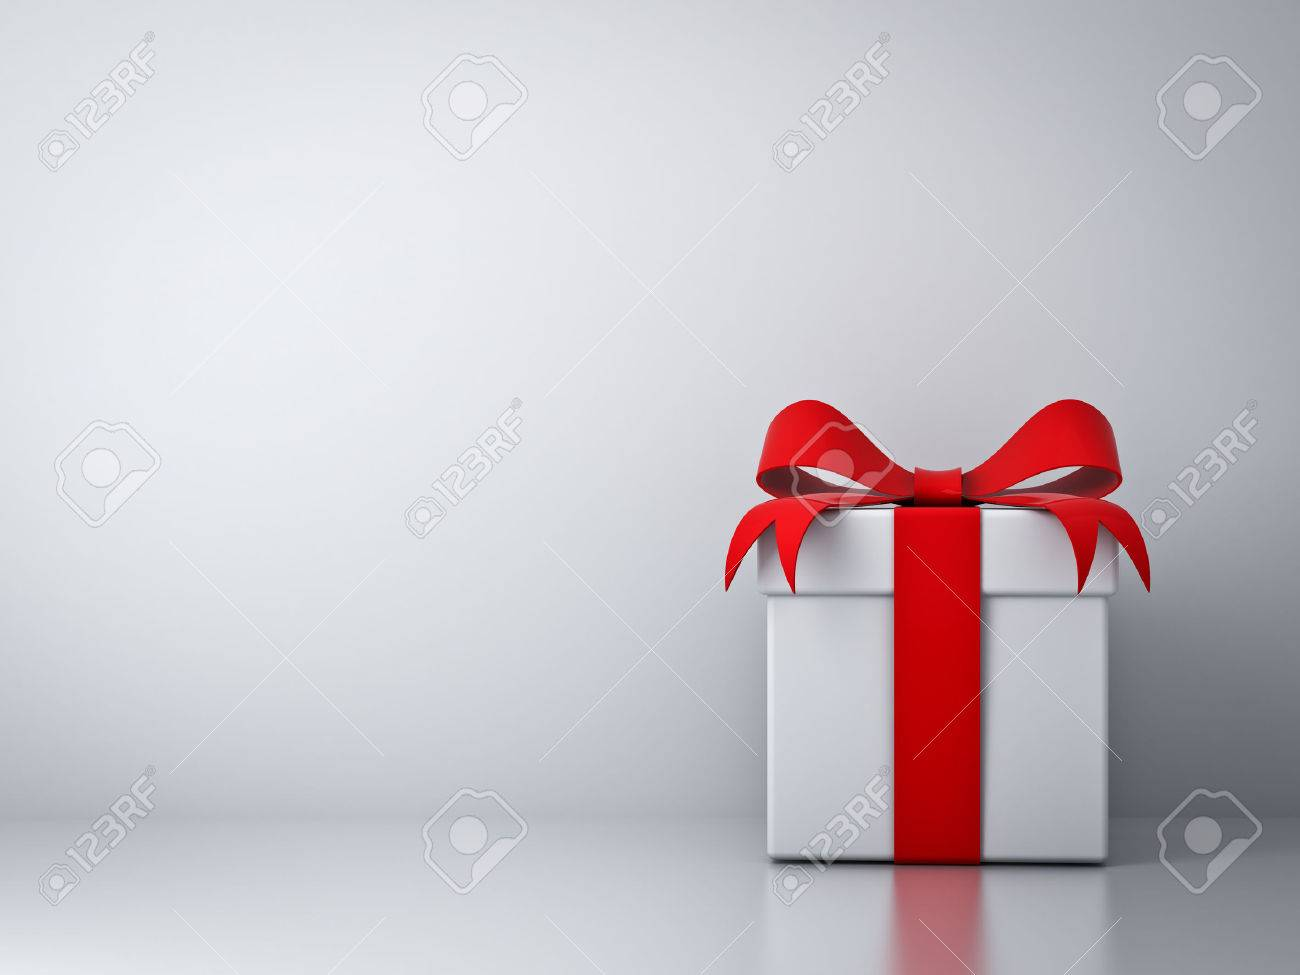 Red gift bows border with clipping path for easy background removing - Red Box Gift Box With Red Ribbon Bow And Empty White Wall Background Abstract Stock